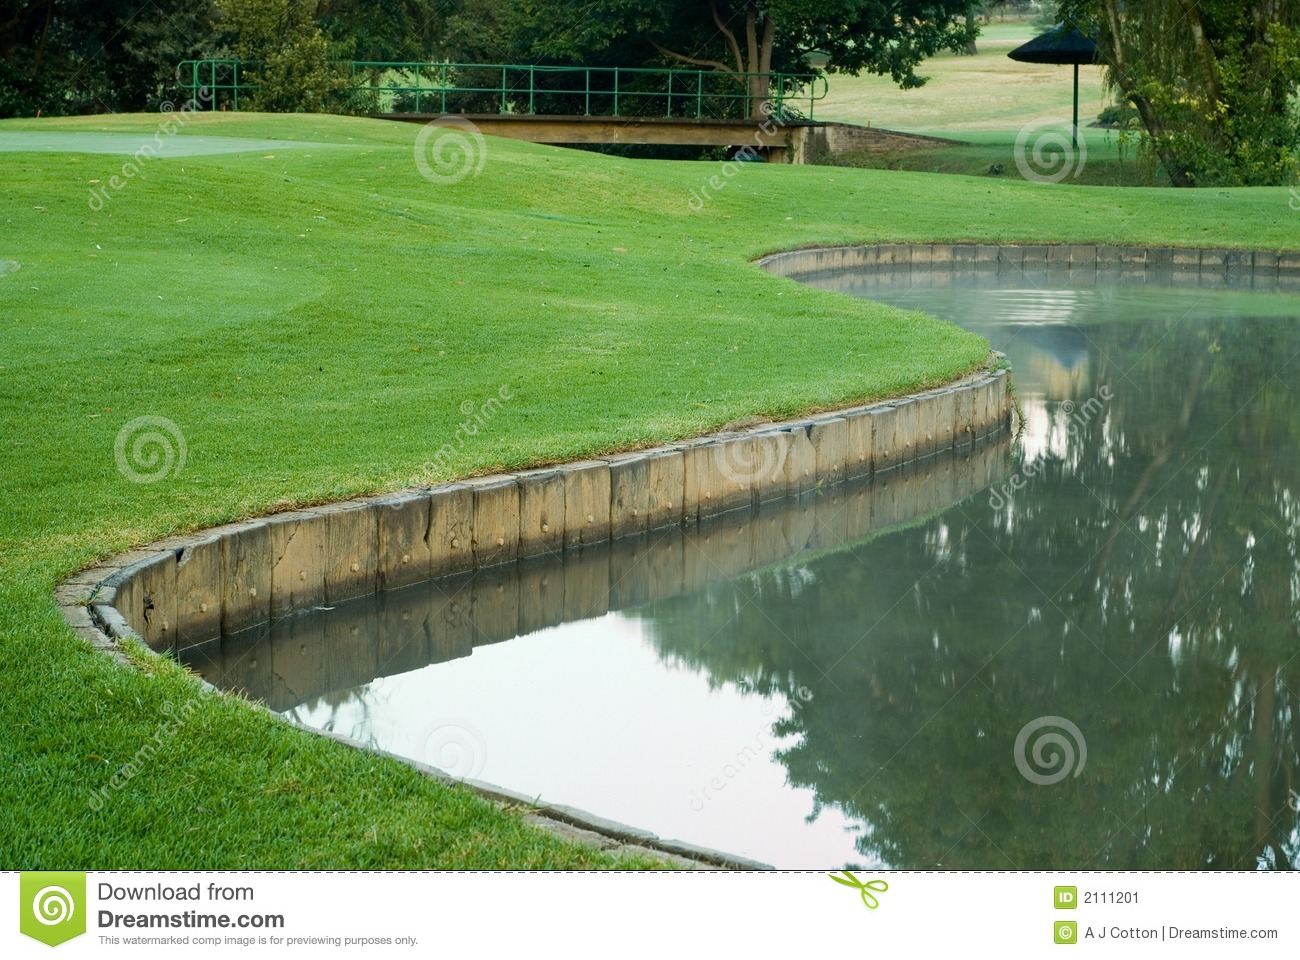 Golf Green And Water Hazard Stock Image Image 2111201